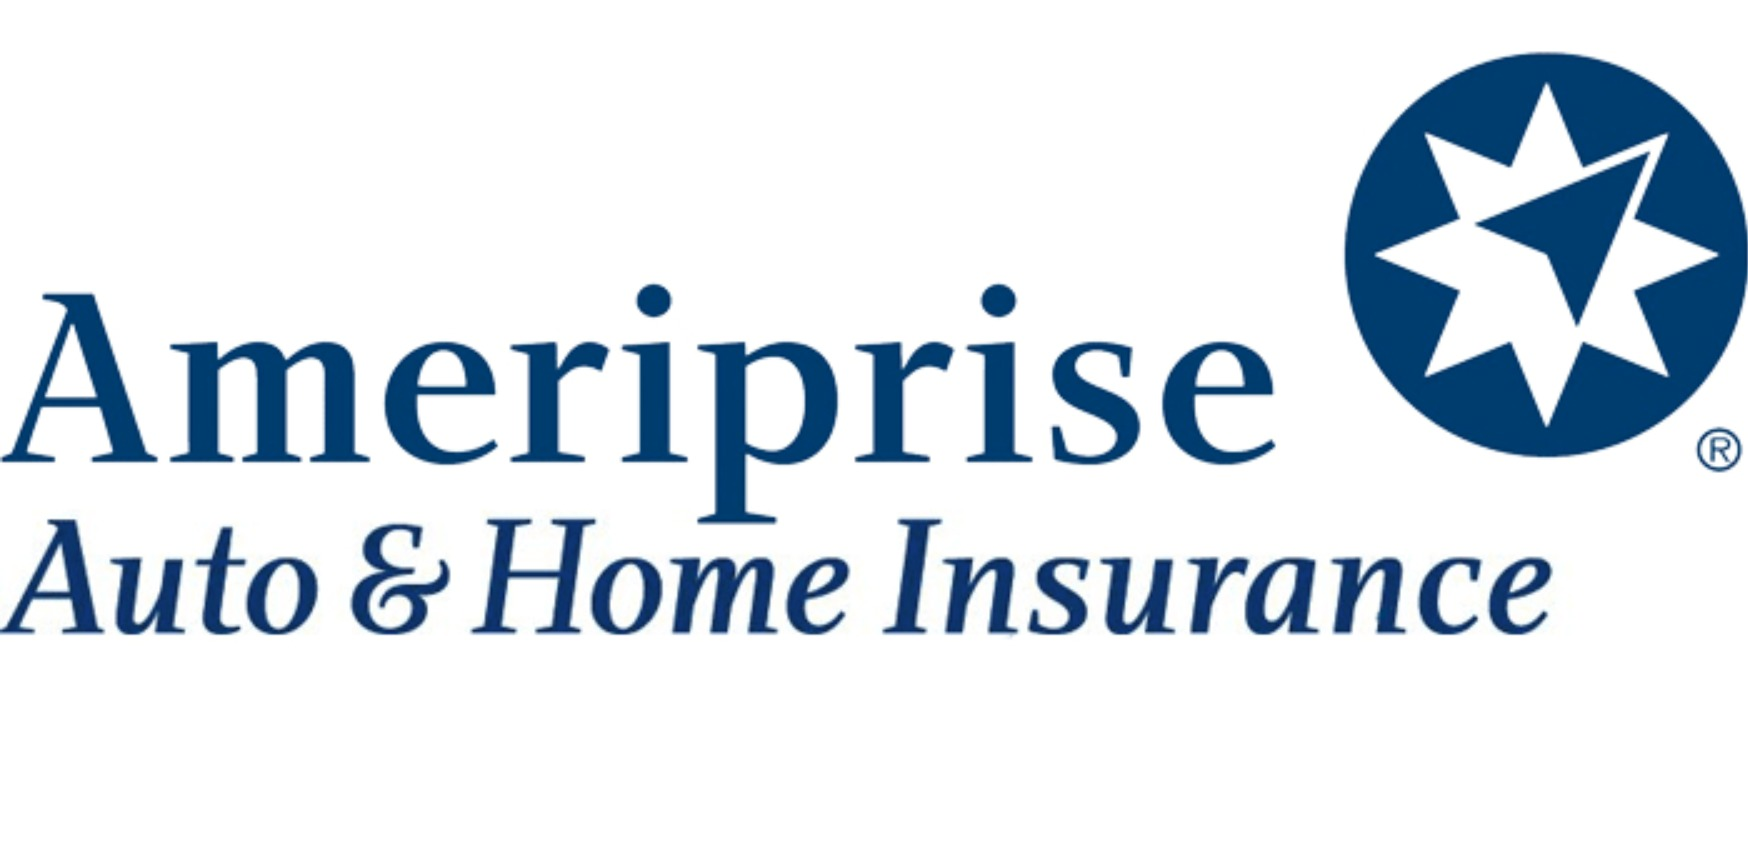 Ameriprise Auto Insurance Review The Simple Dollar